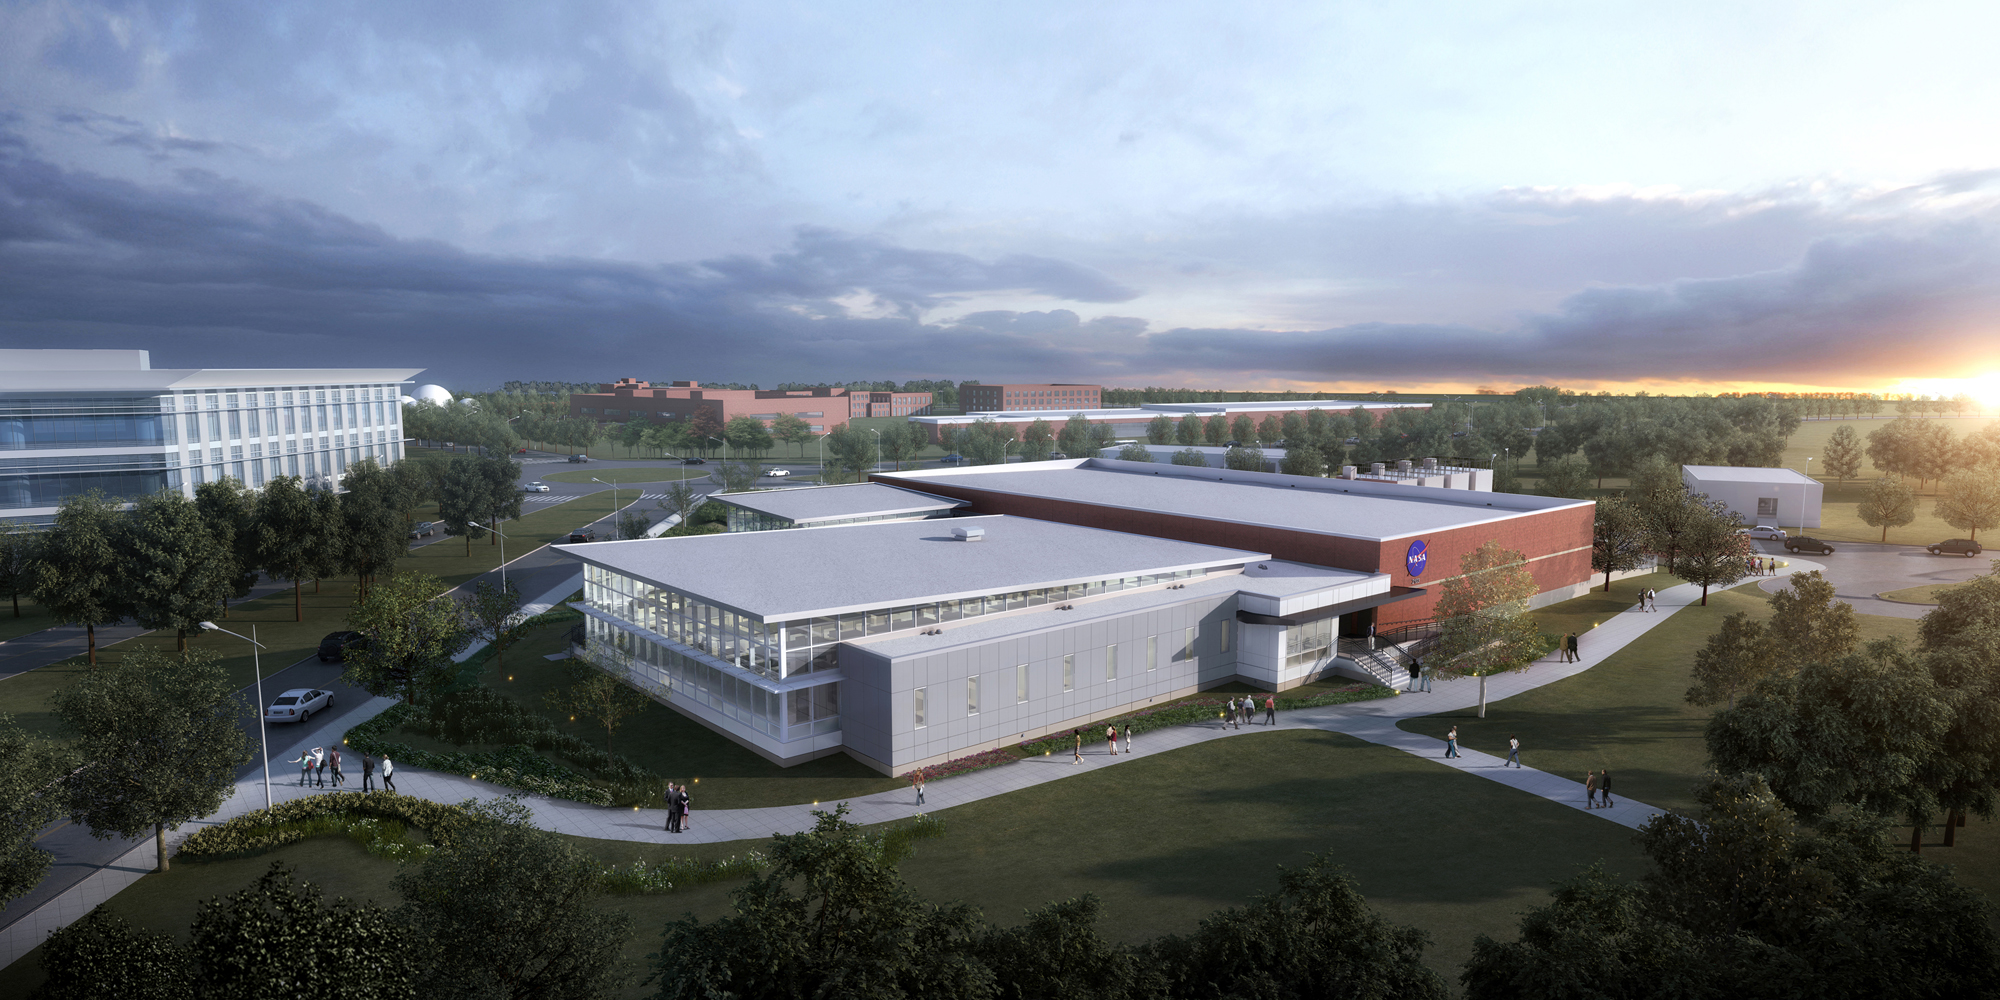 An artist's view of the new Katherine G. Johnson Computational Research Facility at NASA's Langley Research Center in Hampton, Virginia.